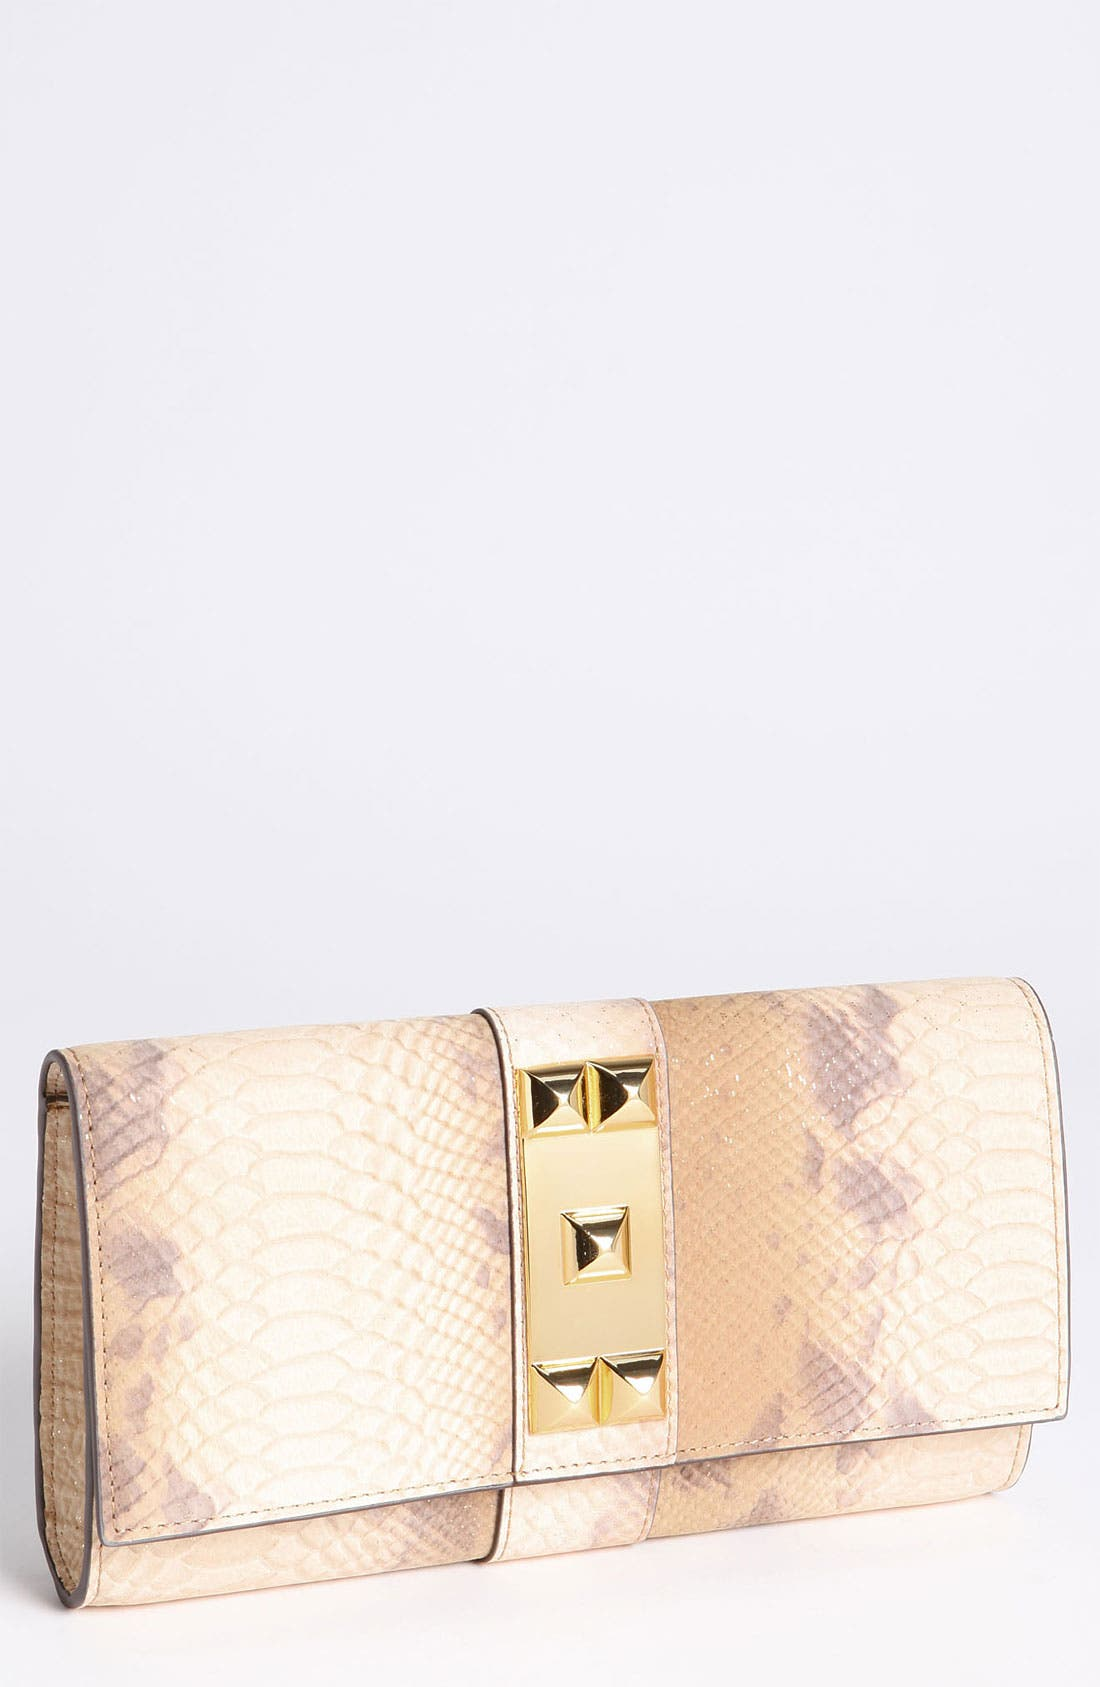 Main Image - Vince Camuto 'Louise' Clutch